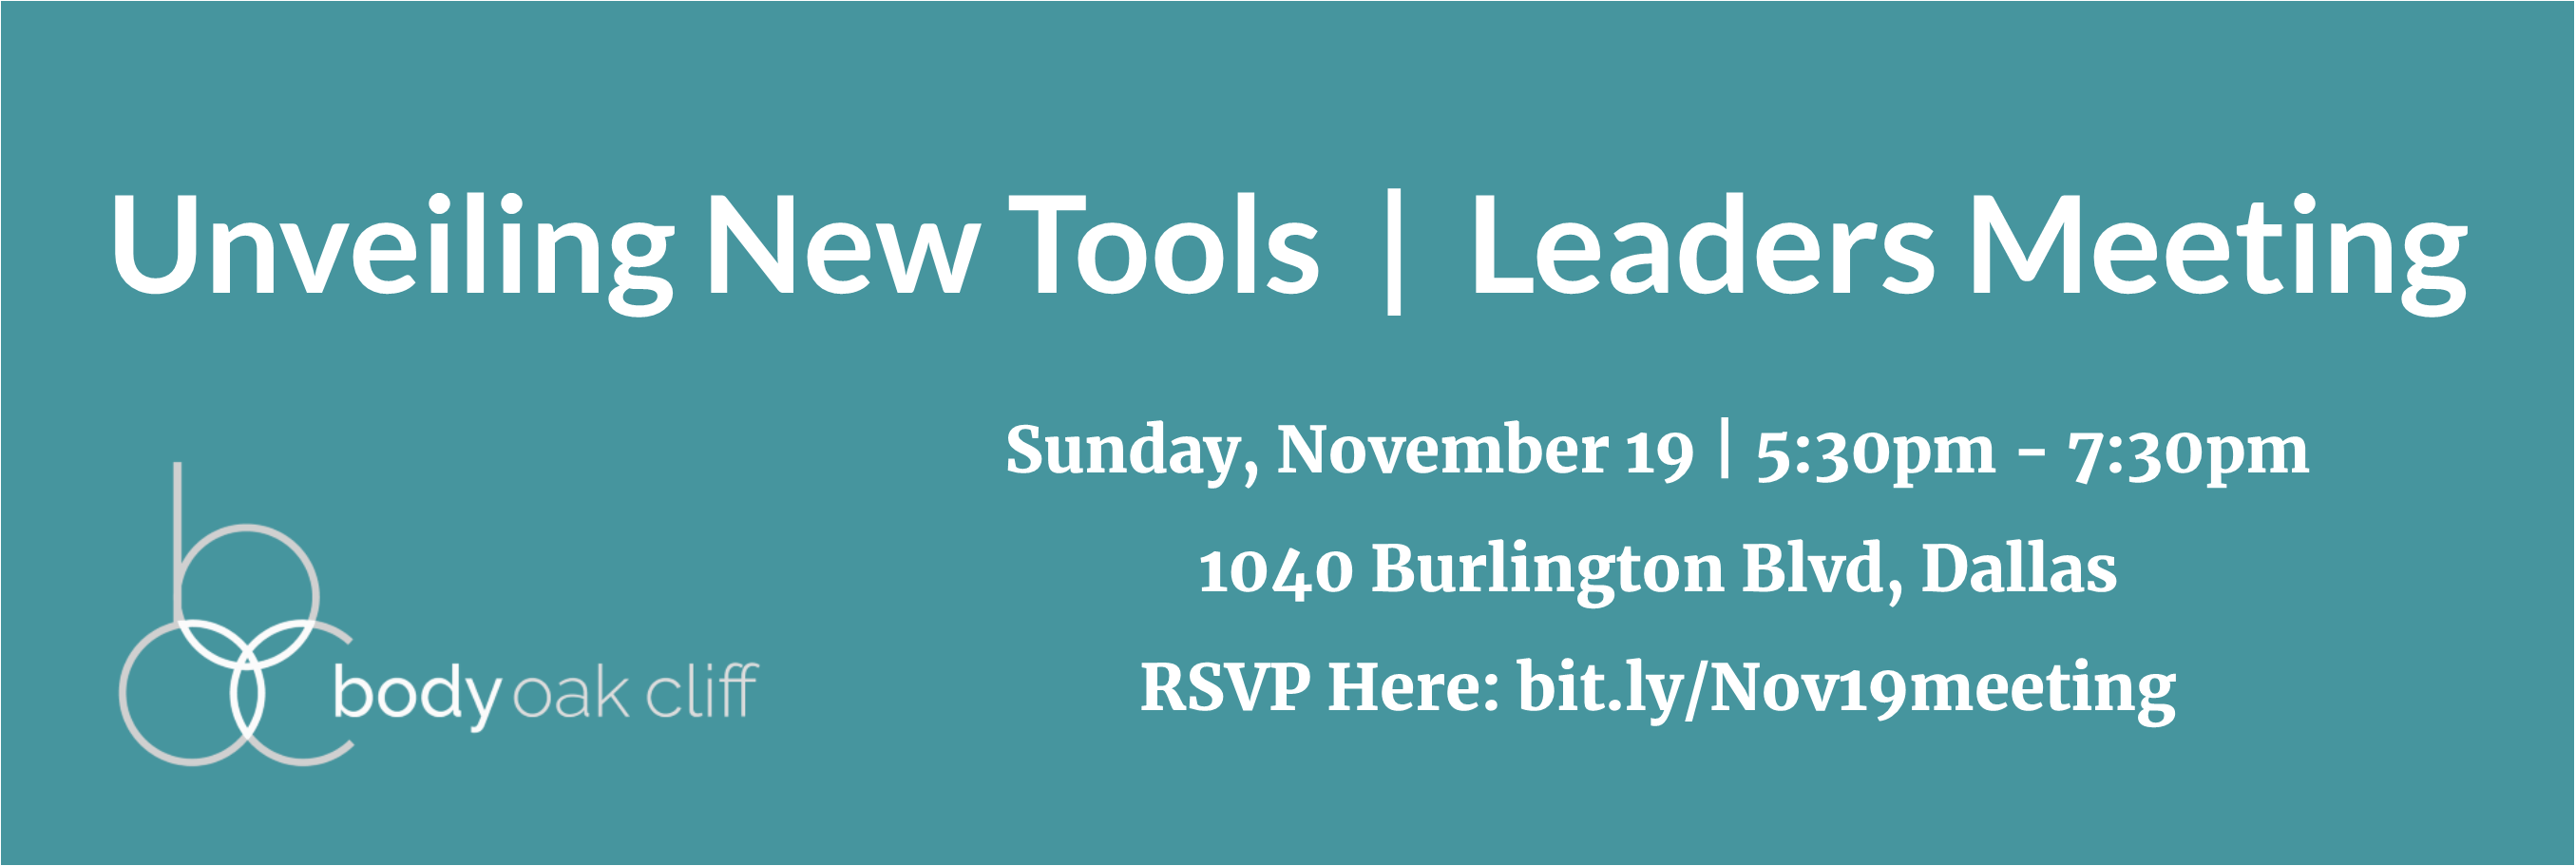 Unveiling New Tools | Leaders Meeting – Body Oak Cliff